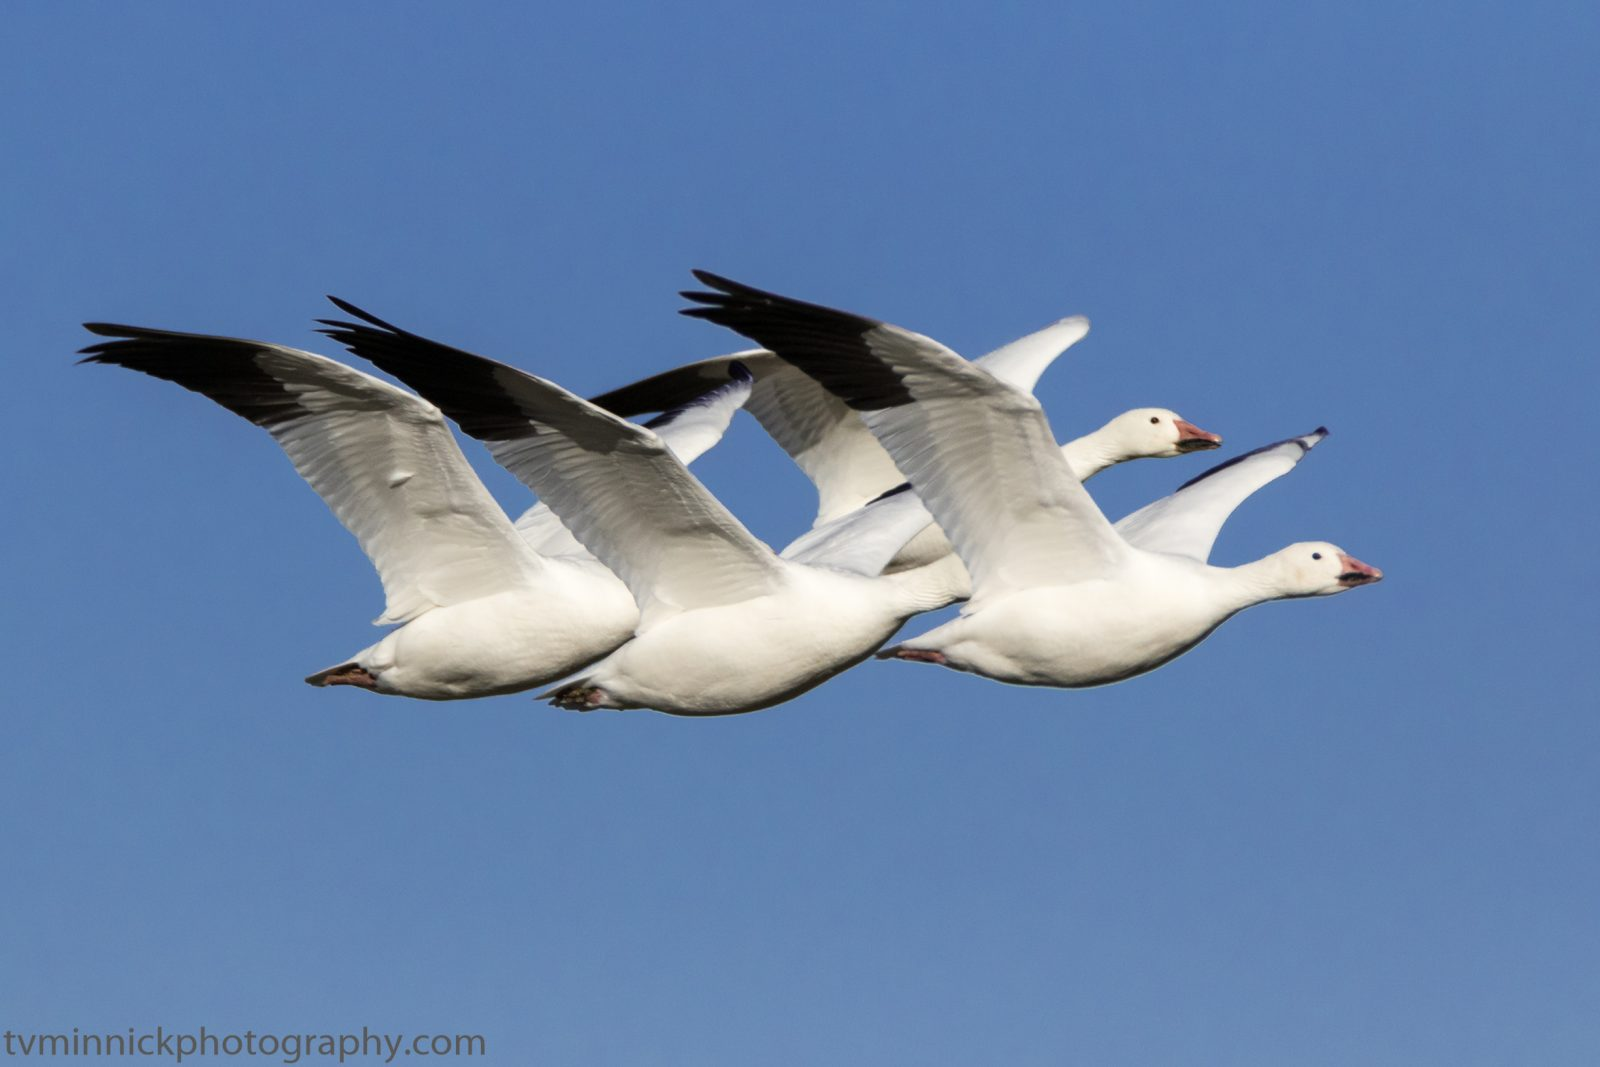 Formation Flying